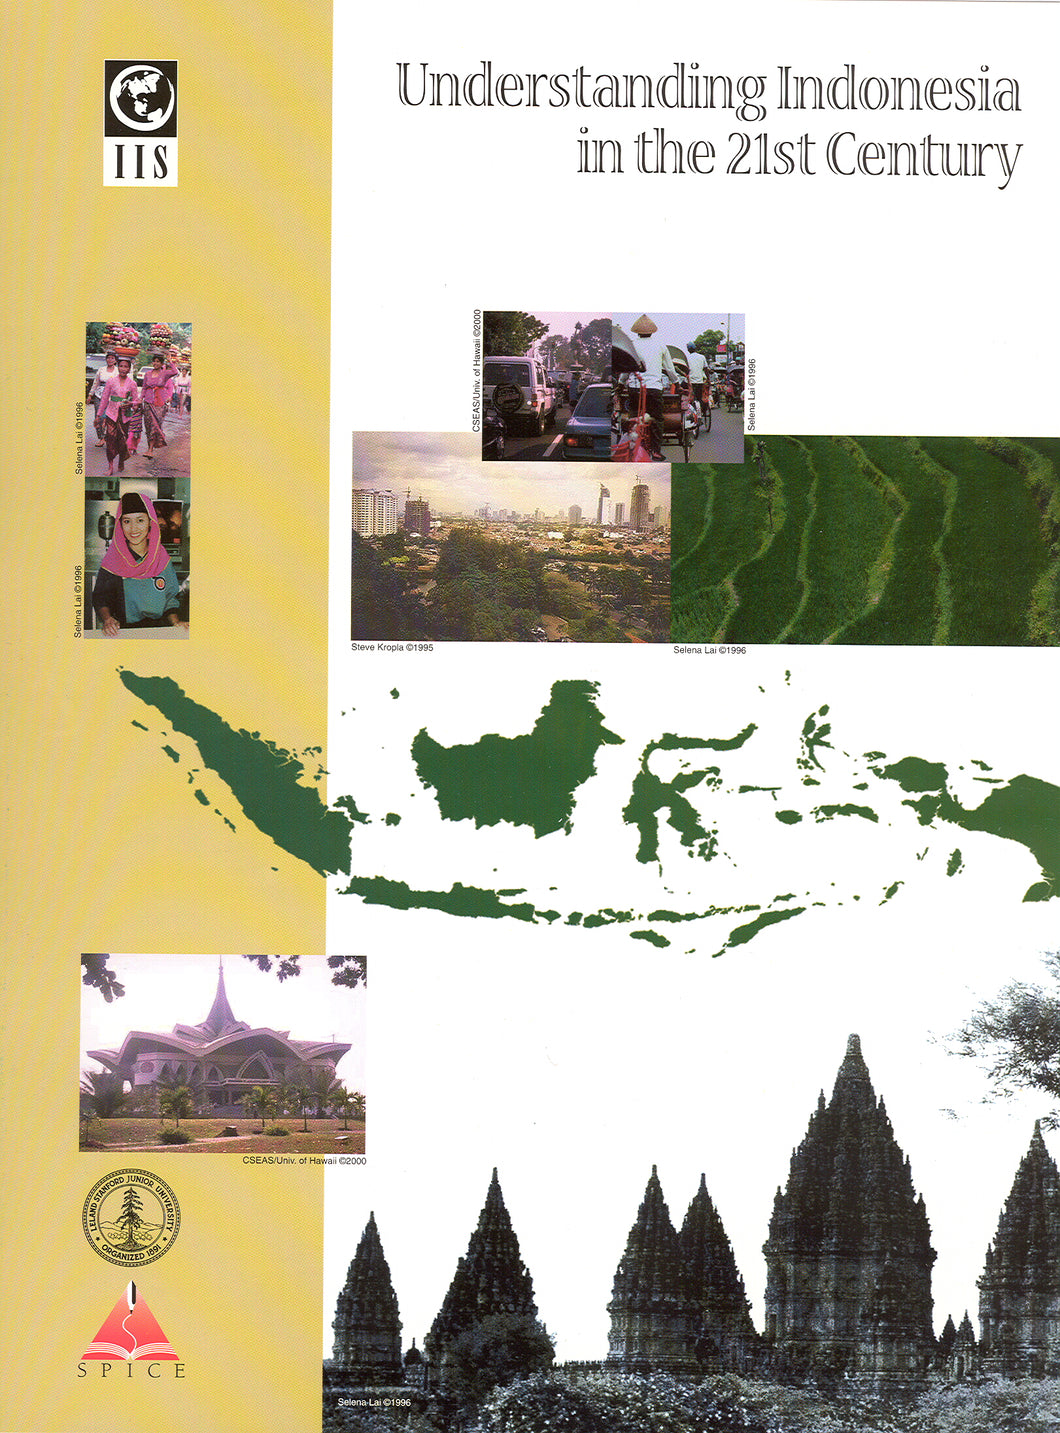 Understanding Indonesia in the 21st Century